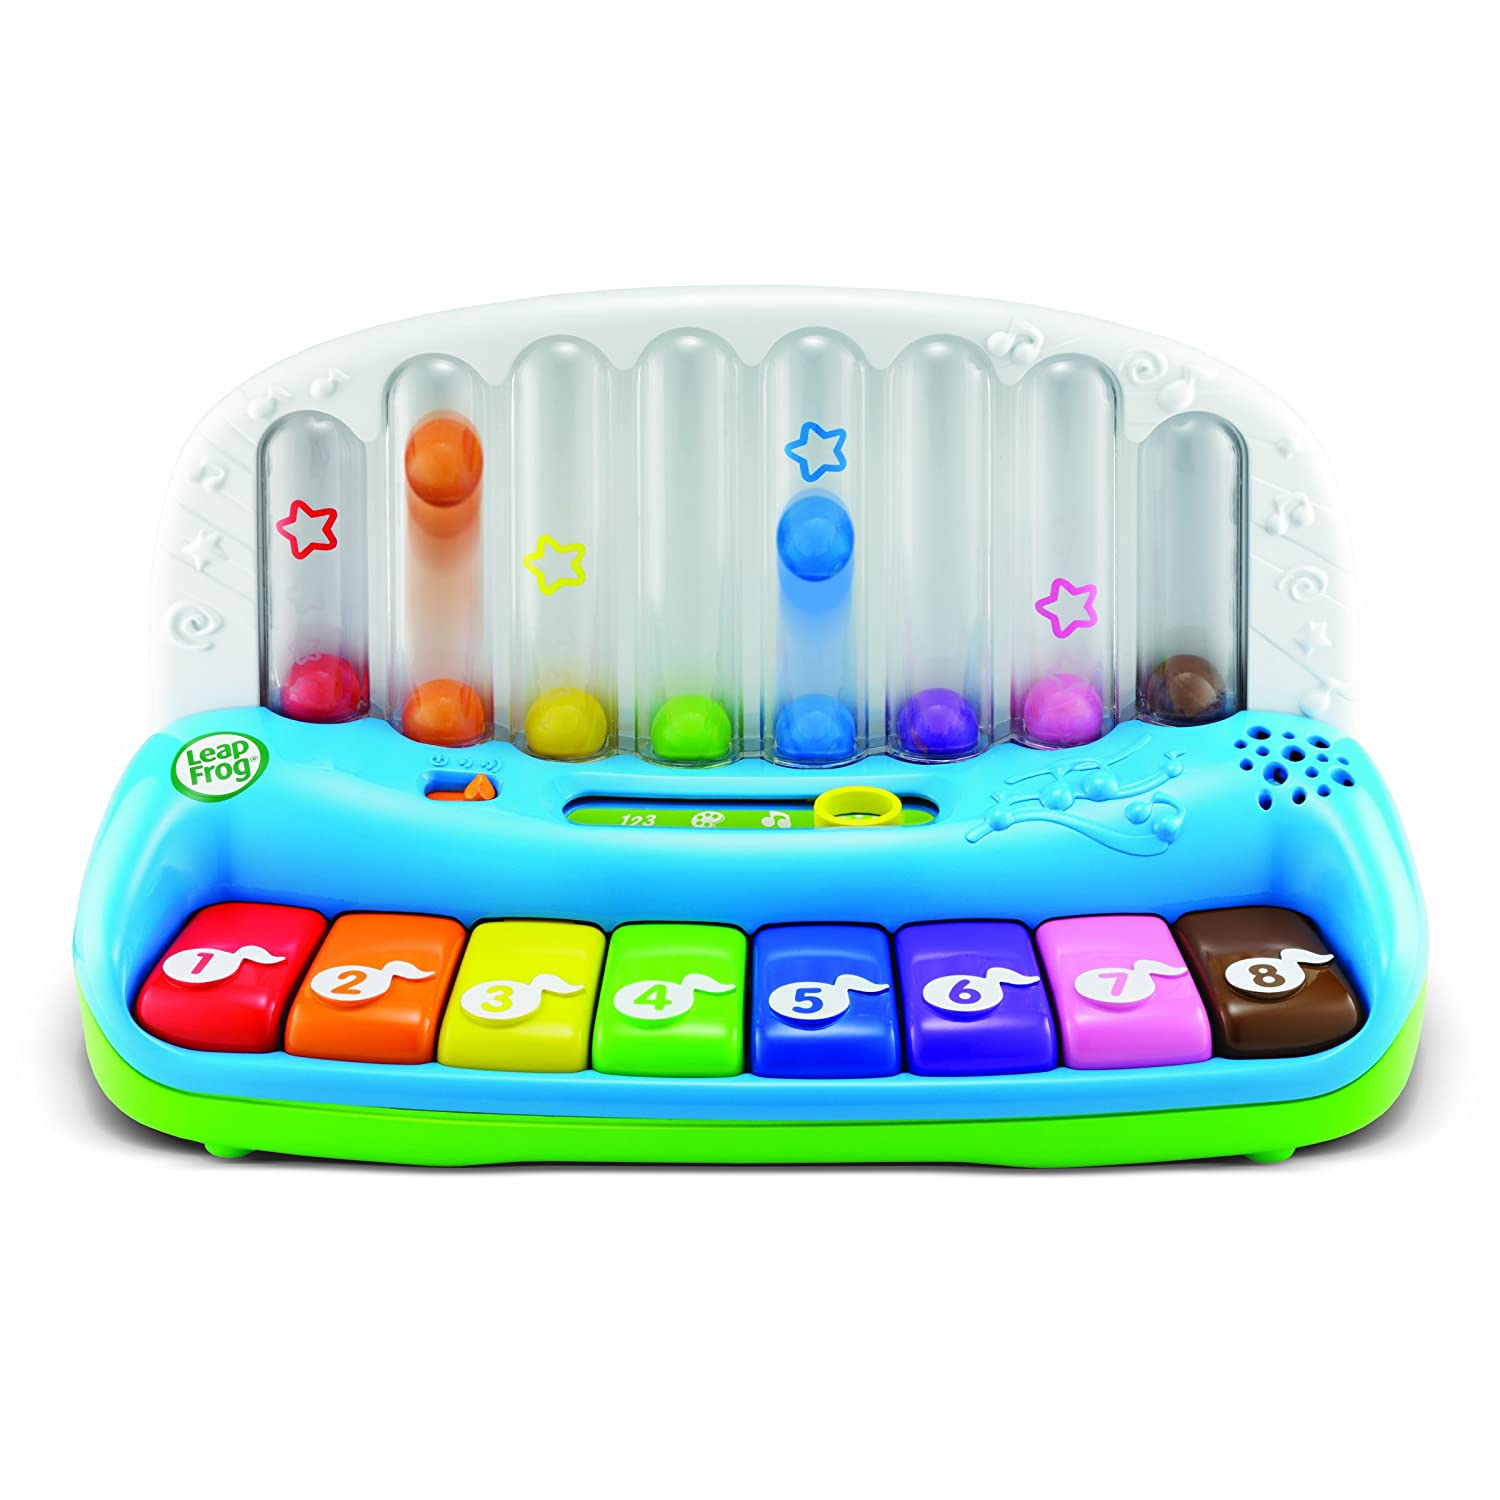 Leapfrog Poppin Play Piano Rainbow Musical Learning Toy